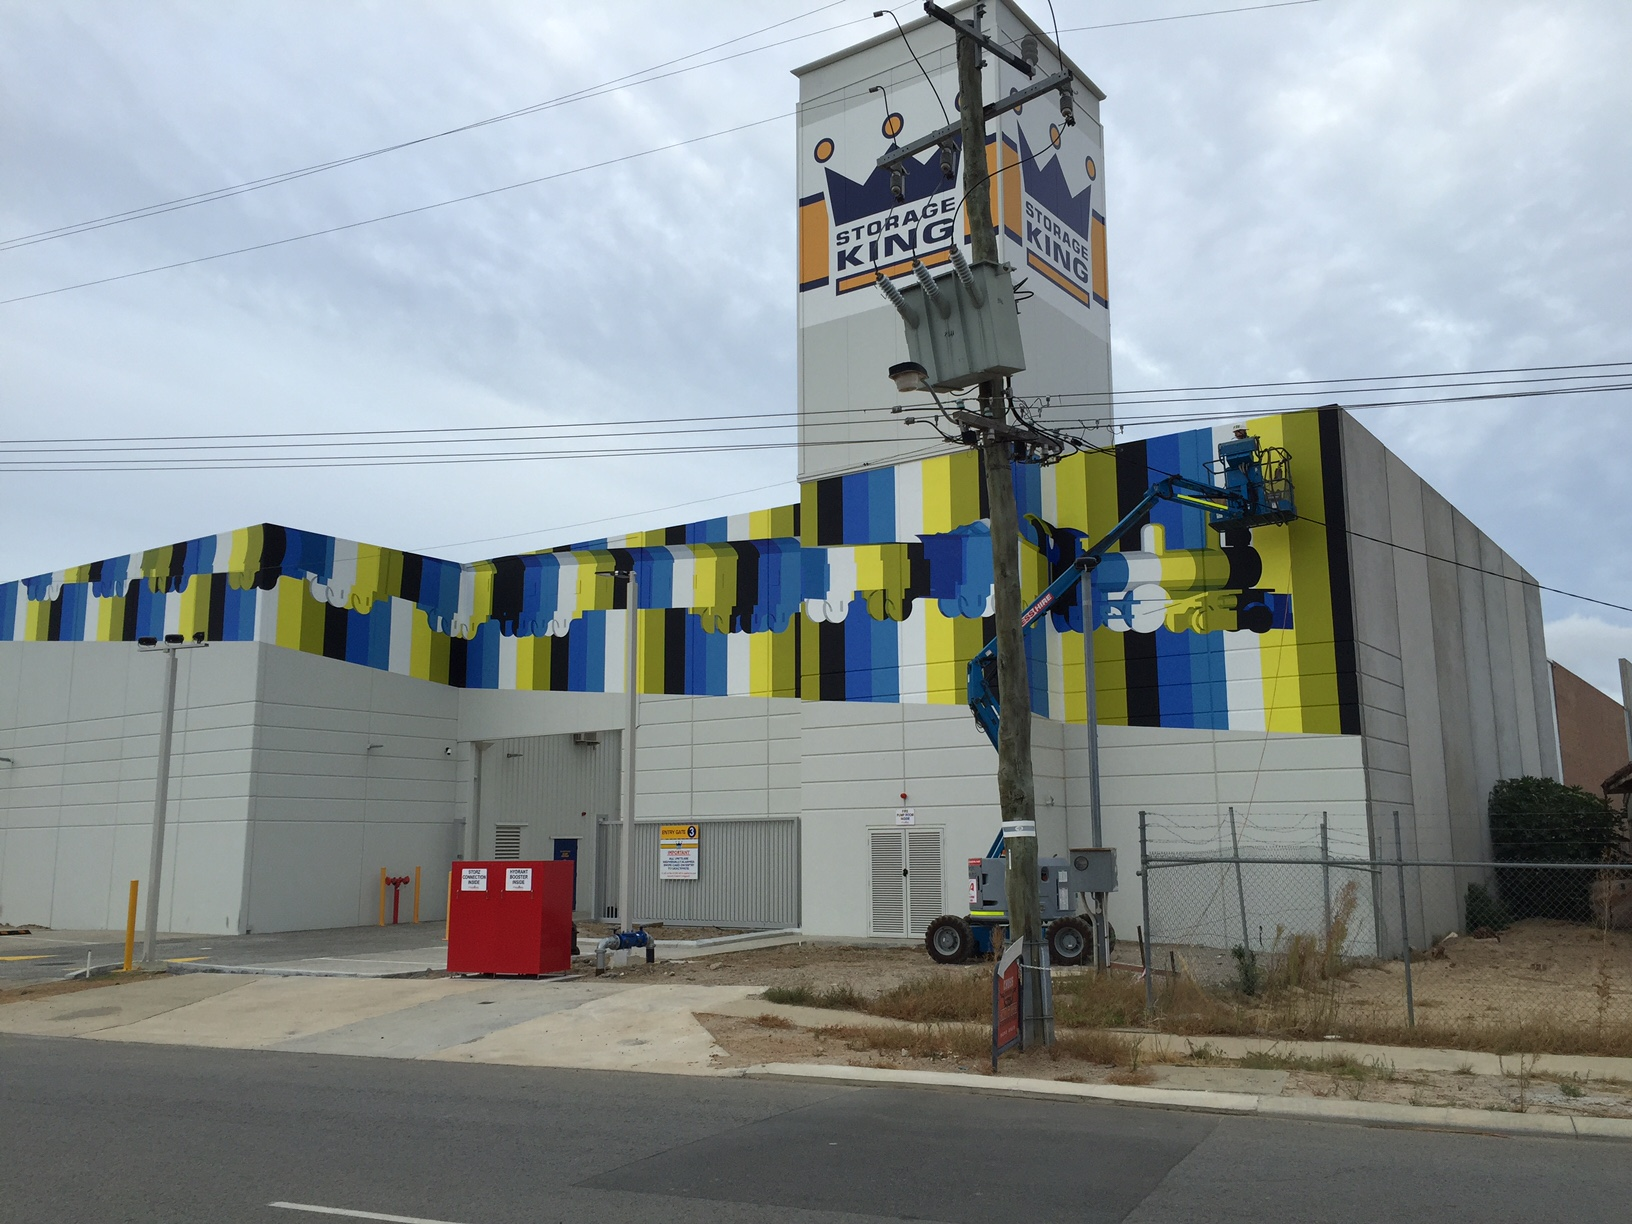 Clear Anti-Graffiti Protection – Midland Storage King